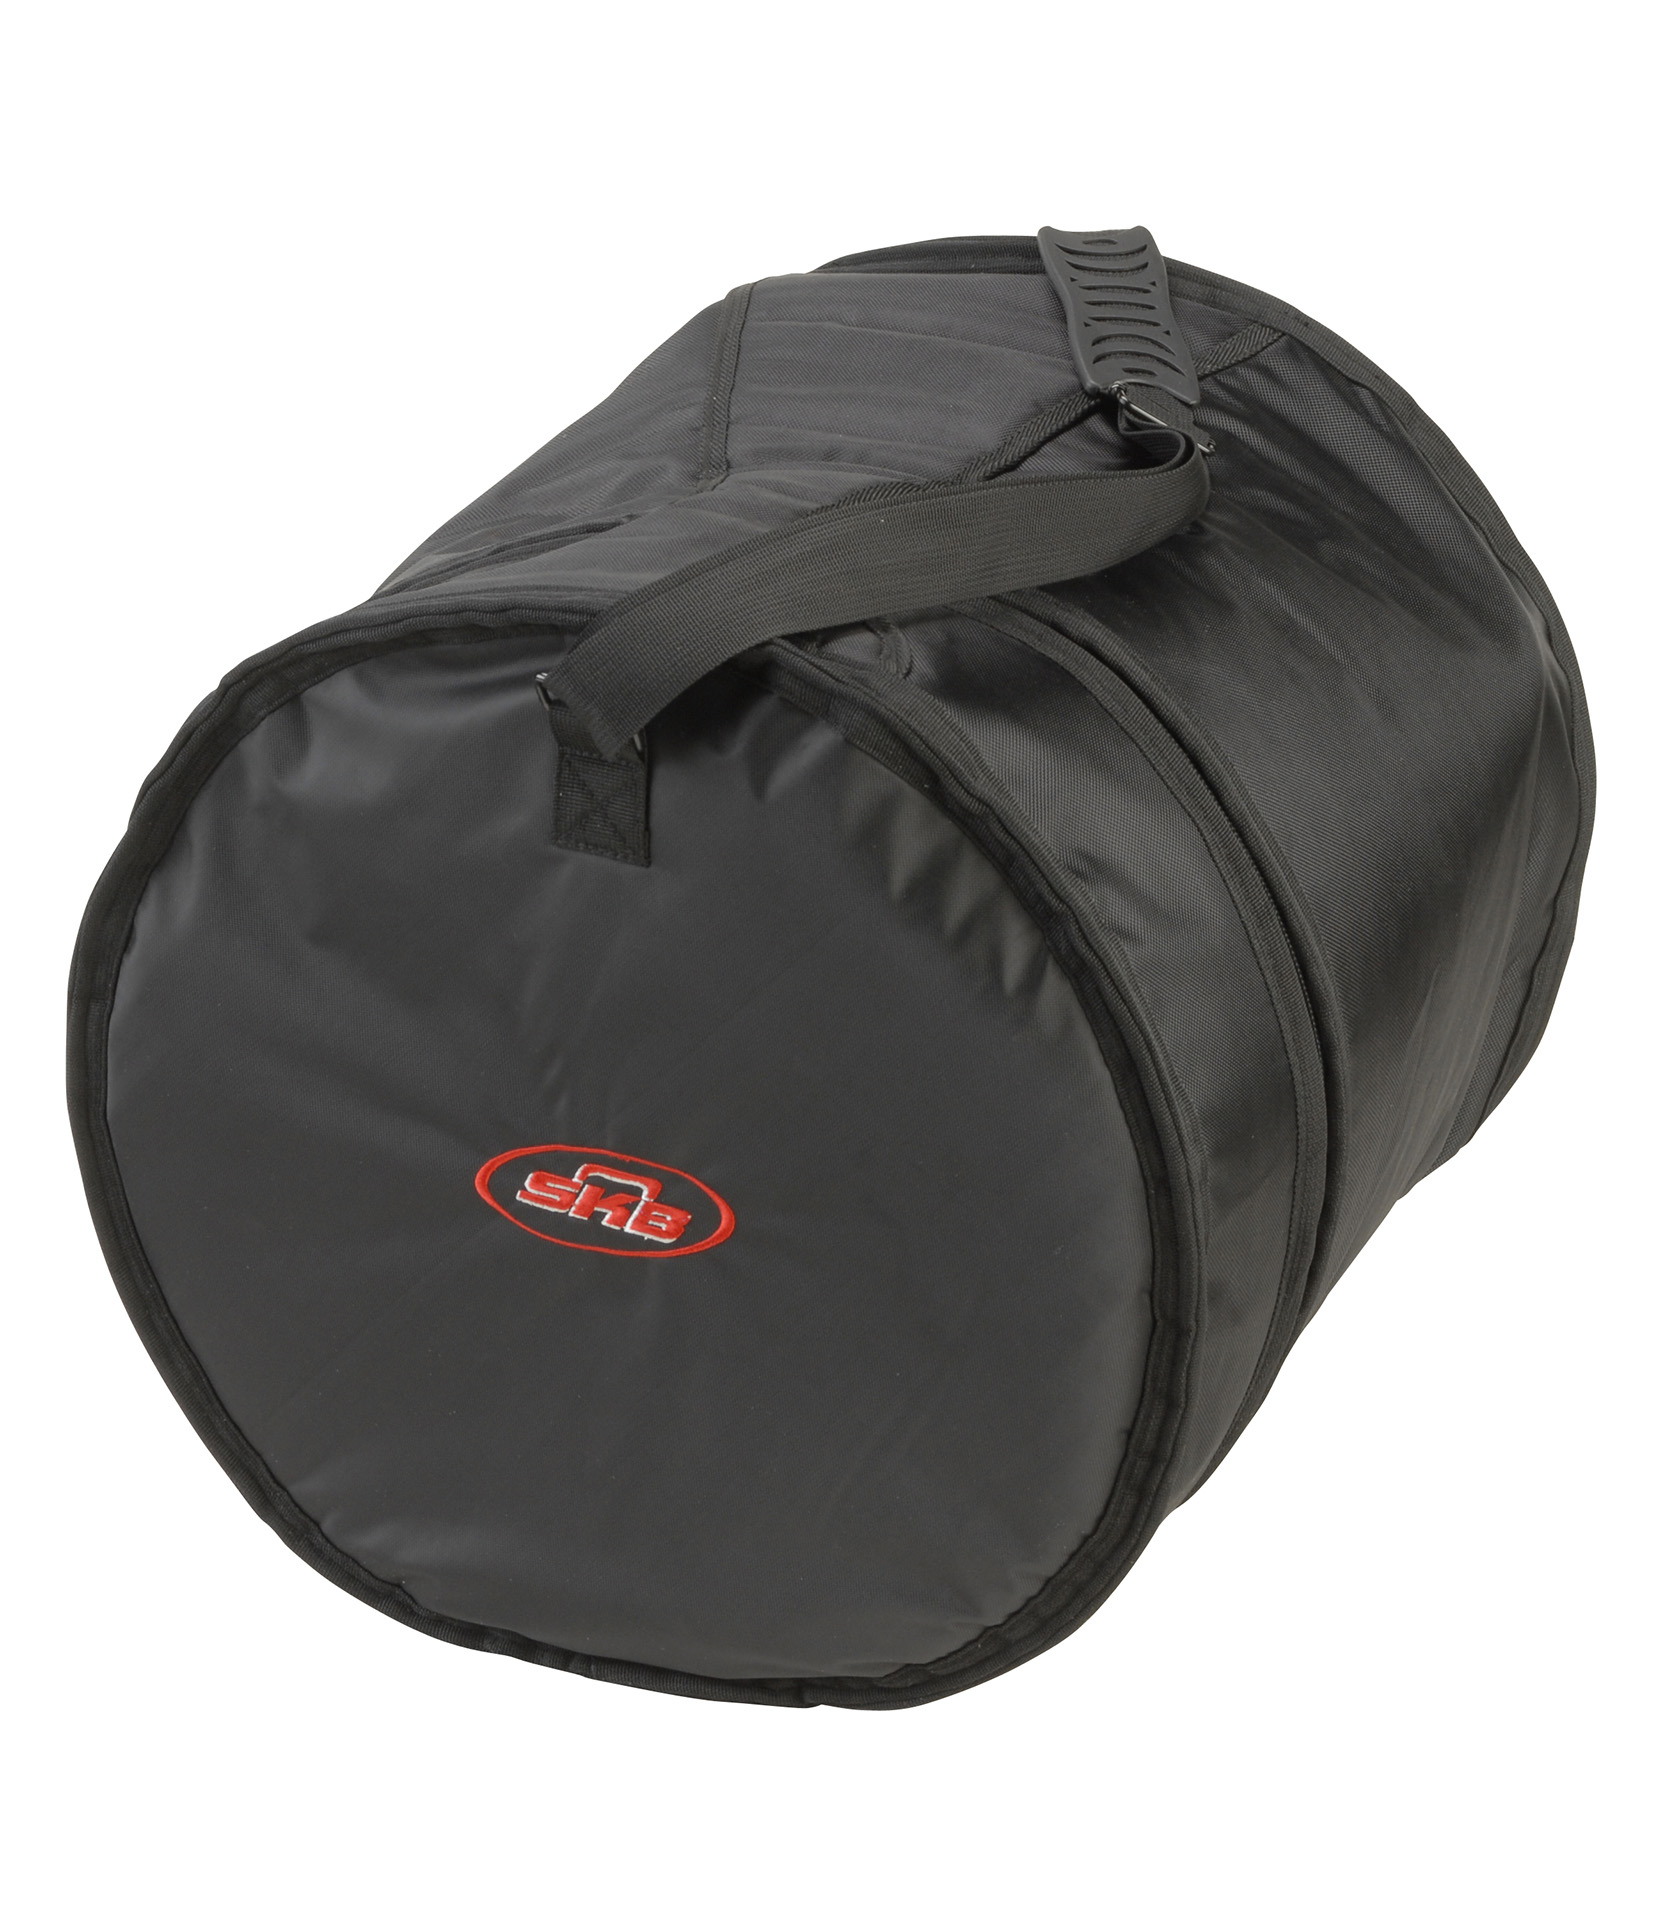 Melody House Musical Instruments Store - 1SKB DB1414 14 x 14 Floor Tom Gig Bag